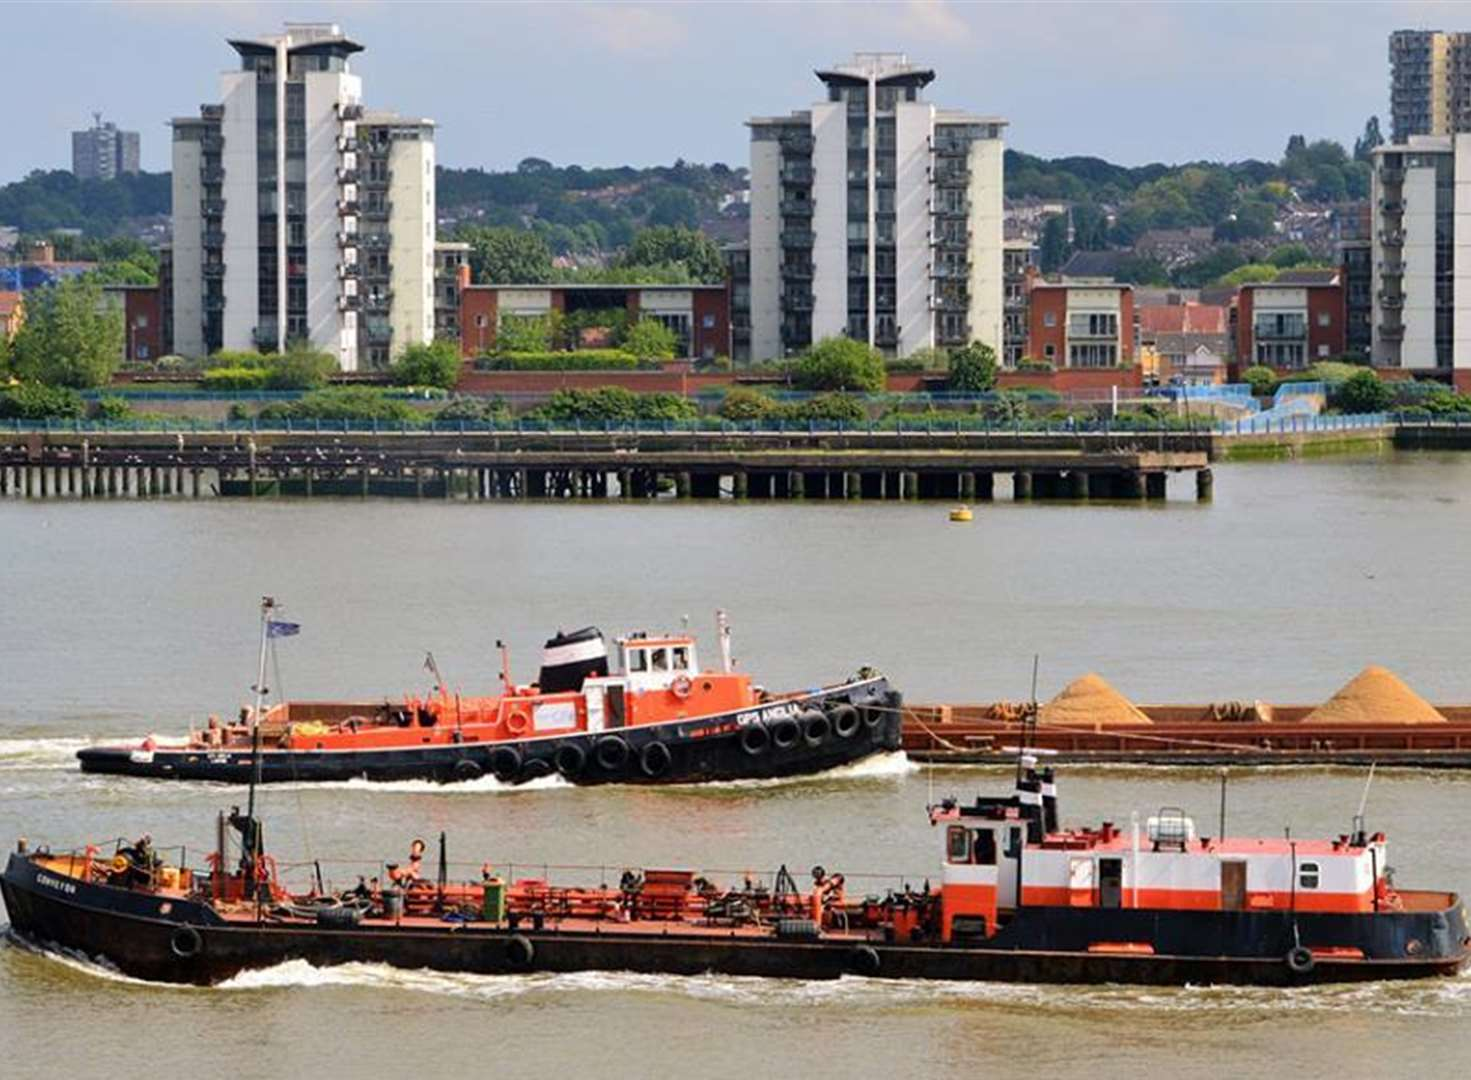 Tug firm's profits fall as shipyard collapses